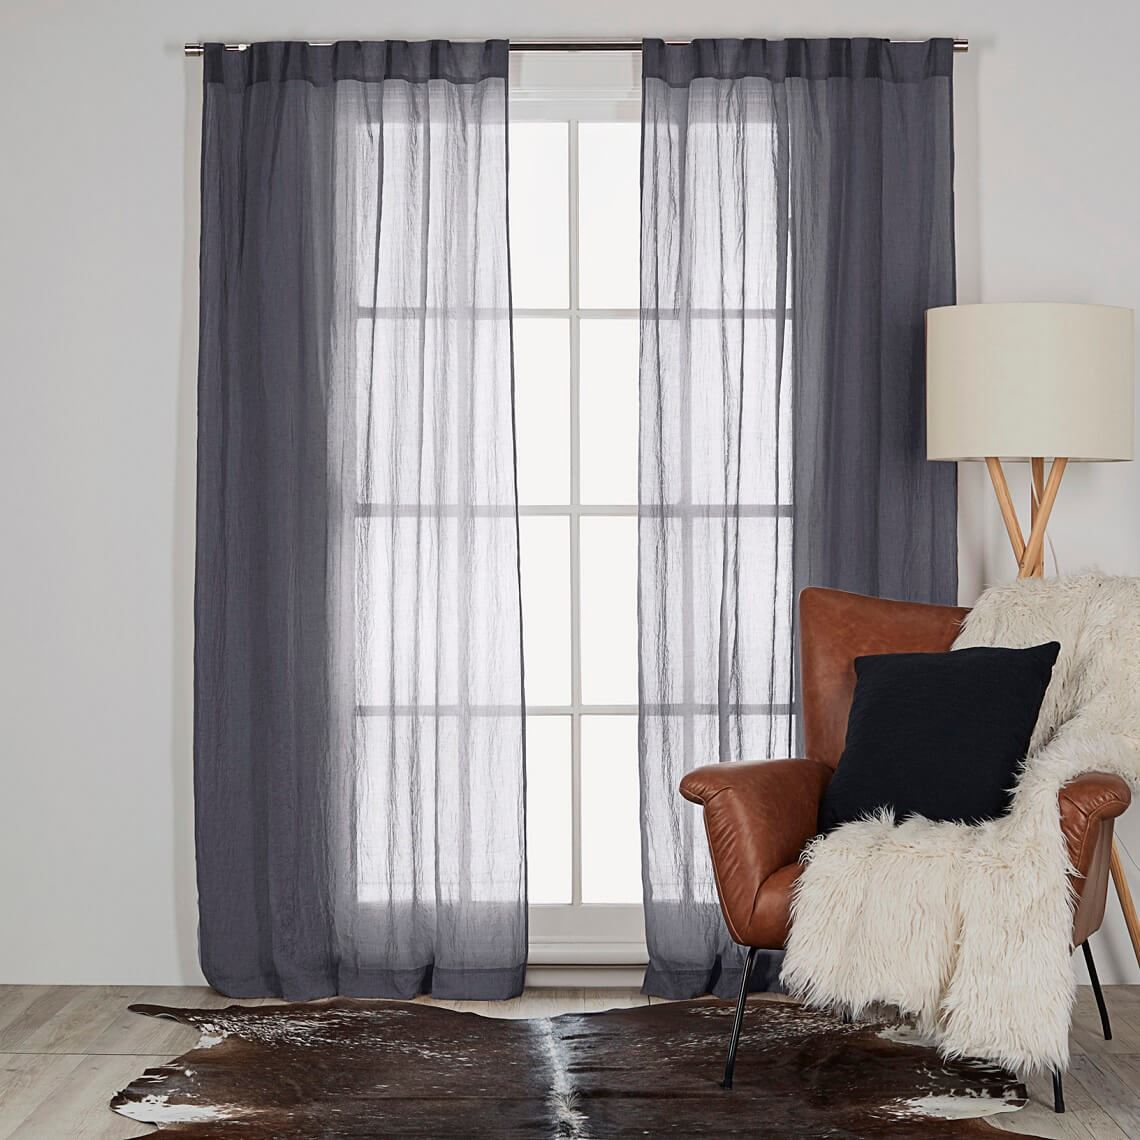 Angus Tab Curtain Size W 140cm x D 0cm x H 230cm in Denim 100% Polyester Freedom by Freedom, a Curtains for sale on Style Sourcebook